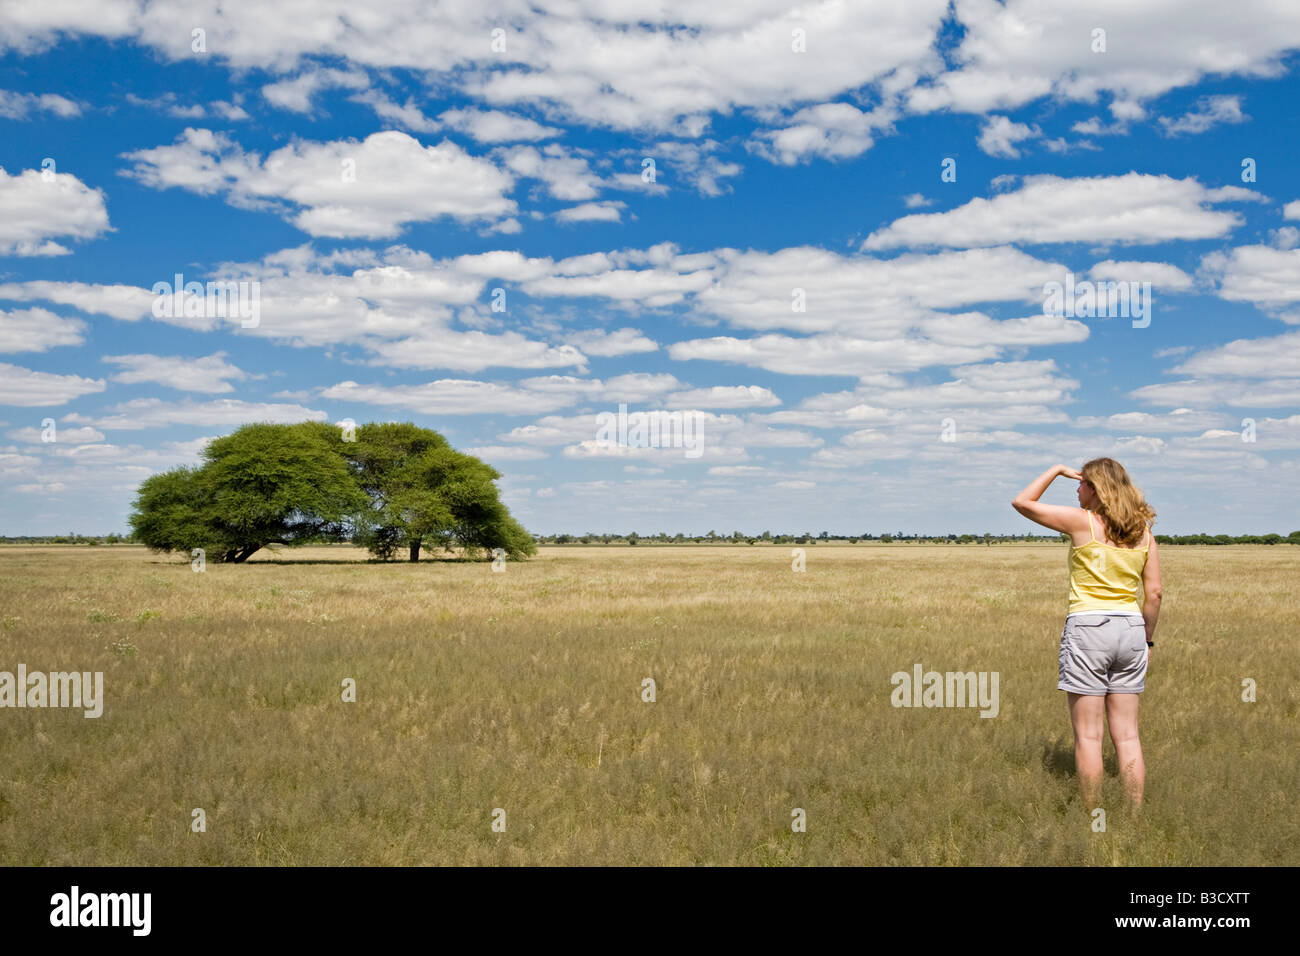 Africa, Botswana, Tourist looking at the landscape - Stock Image